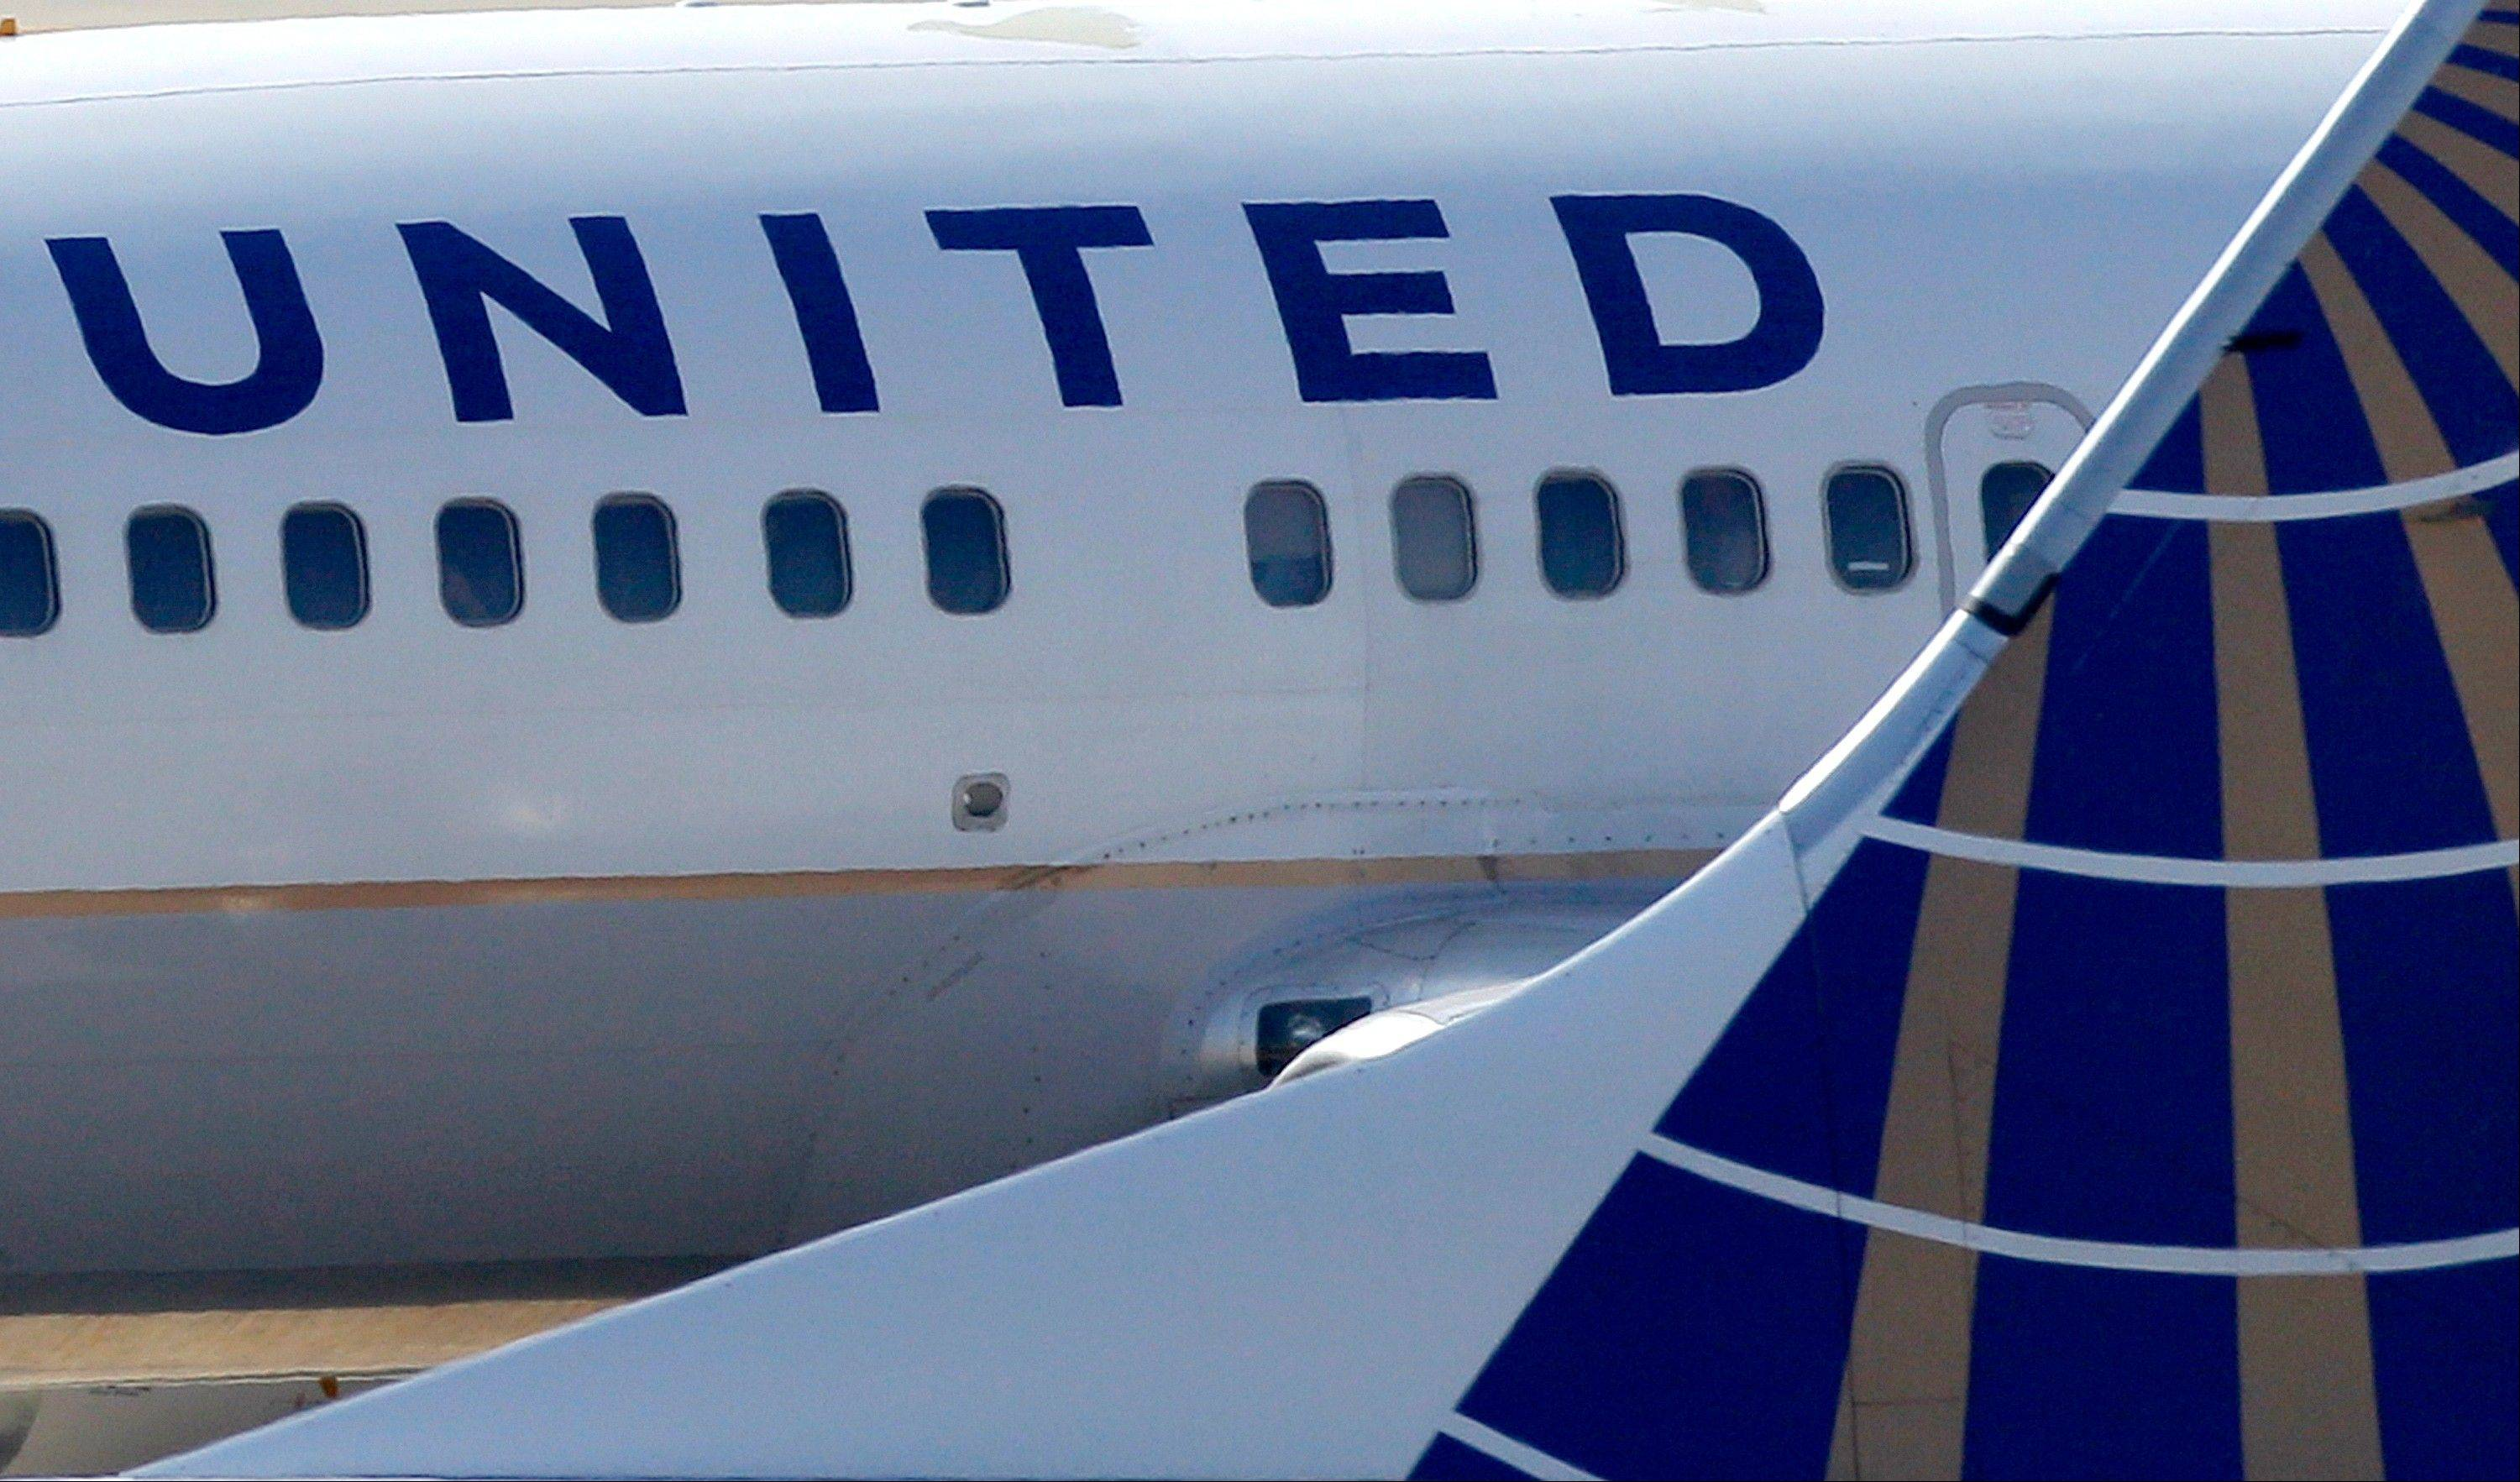 ASSOCIATED PRESS United Continental Holdings stock climbed to the highest price since 2008 after the world's biggest airline said it would cut $2 billion in annual spending and boost profit.